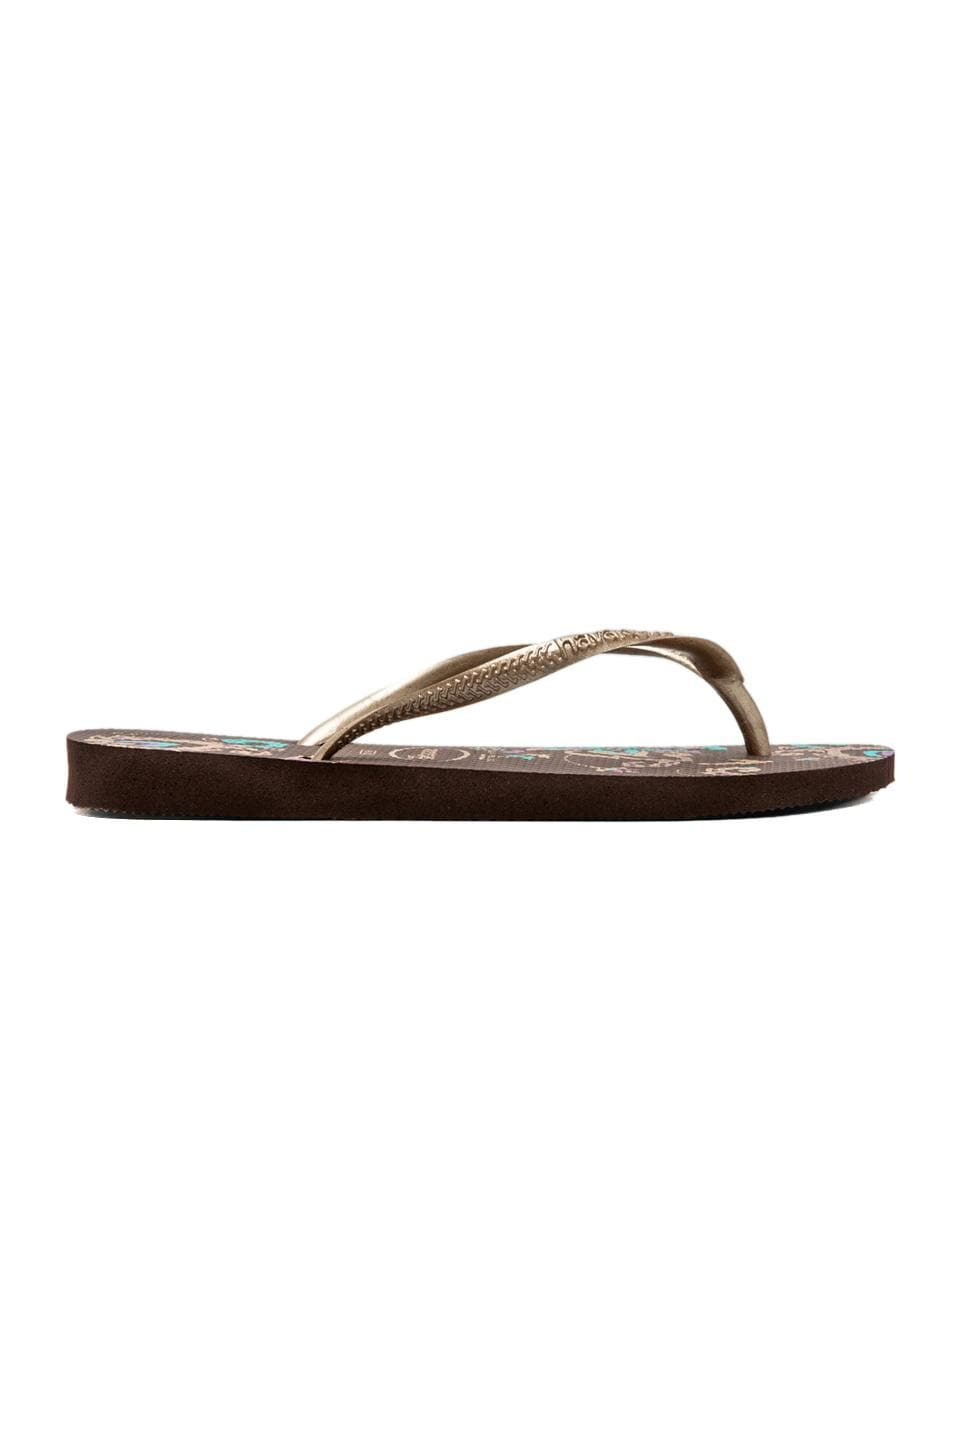 Havaianas Slim Season in Dark Brown/Golden